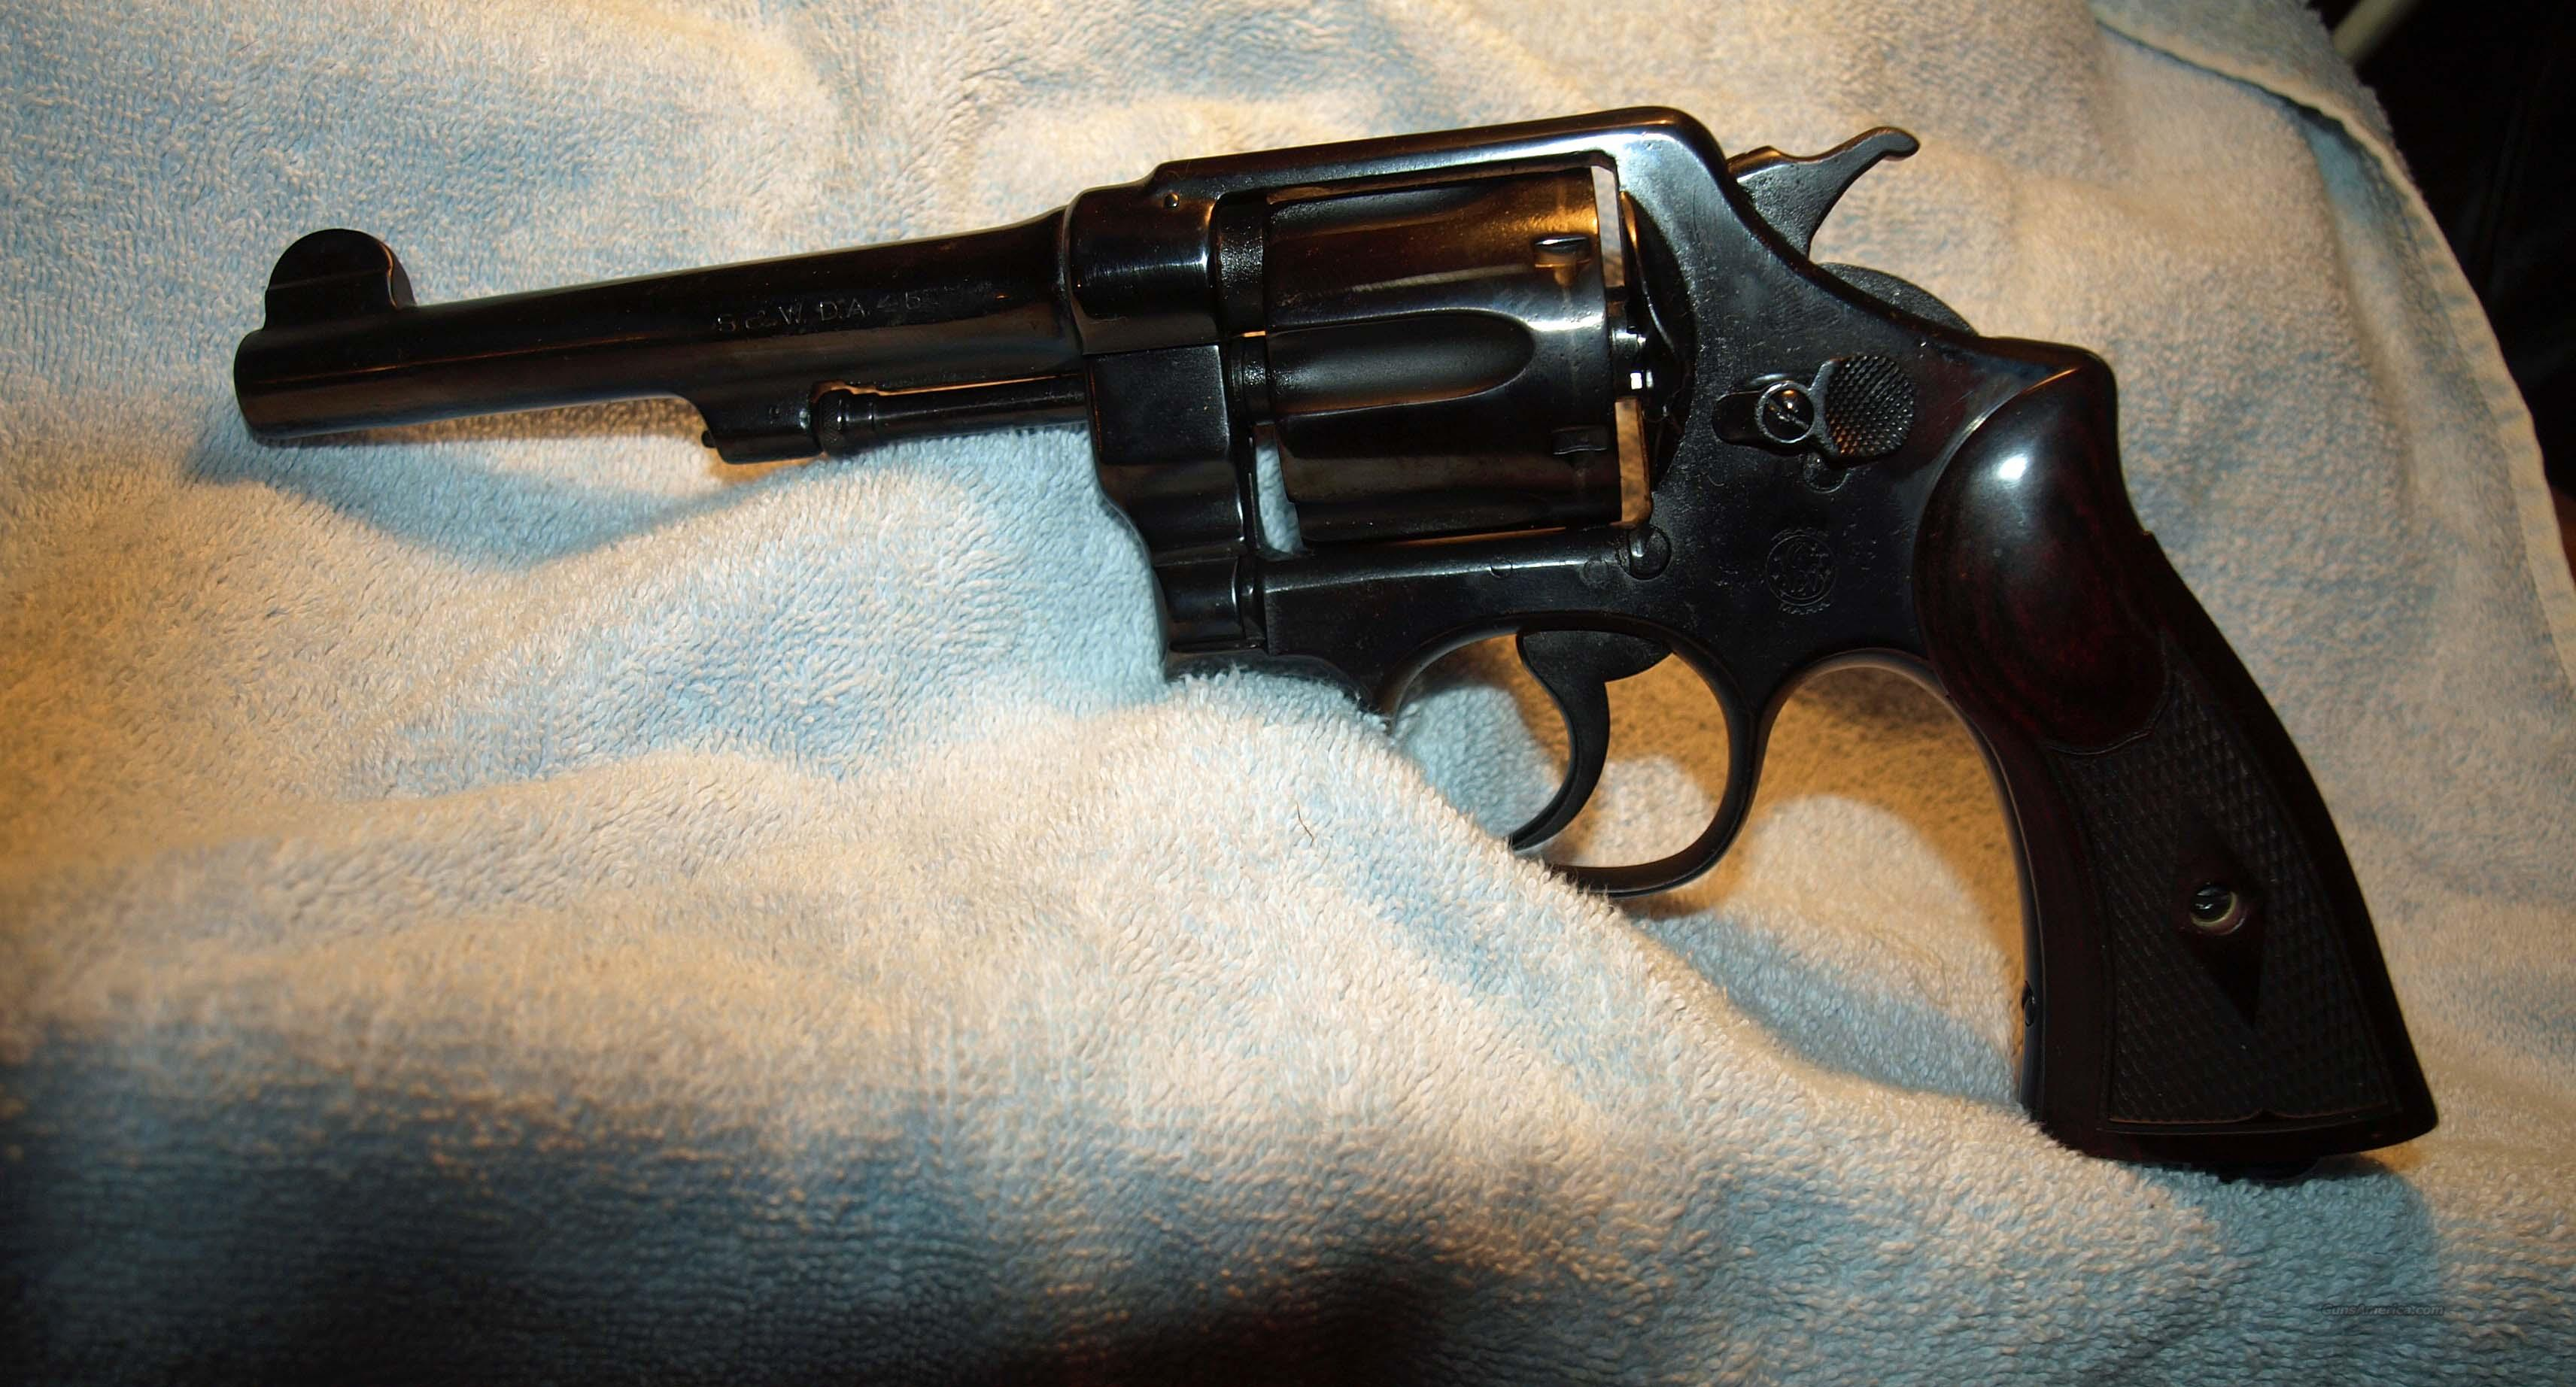 1950 Army  Guns > Pistols > Smith & Wesson Revolvers > Full Frame Revolver